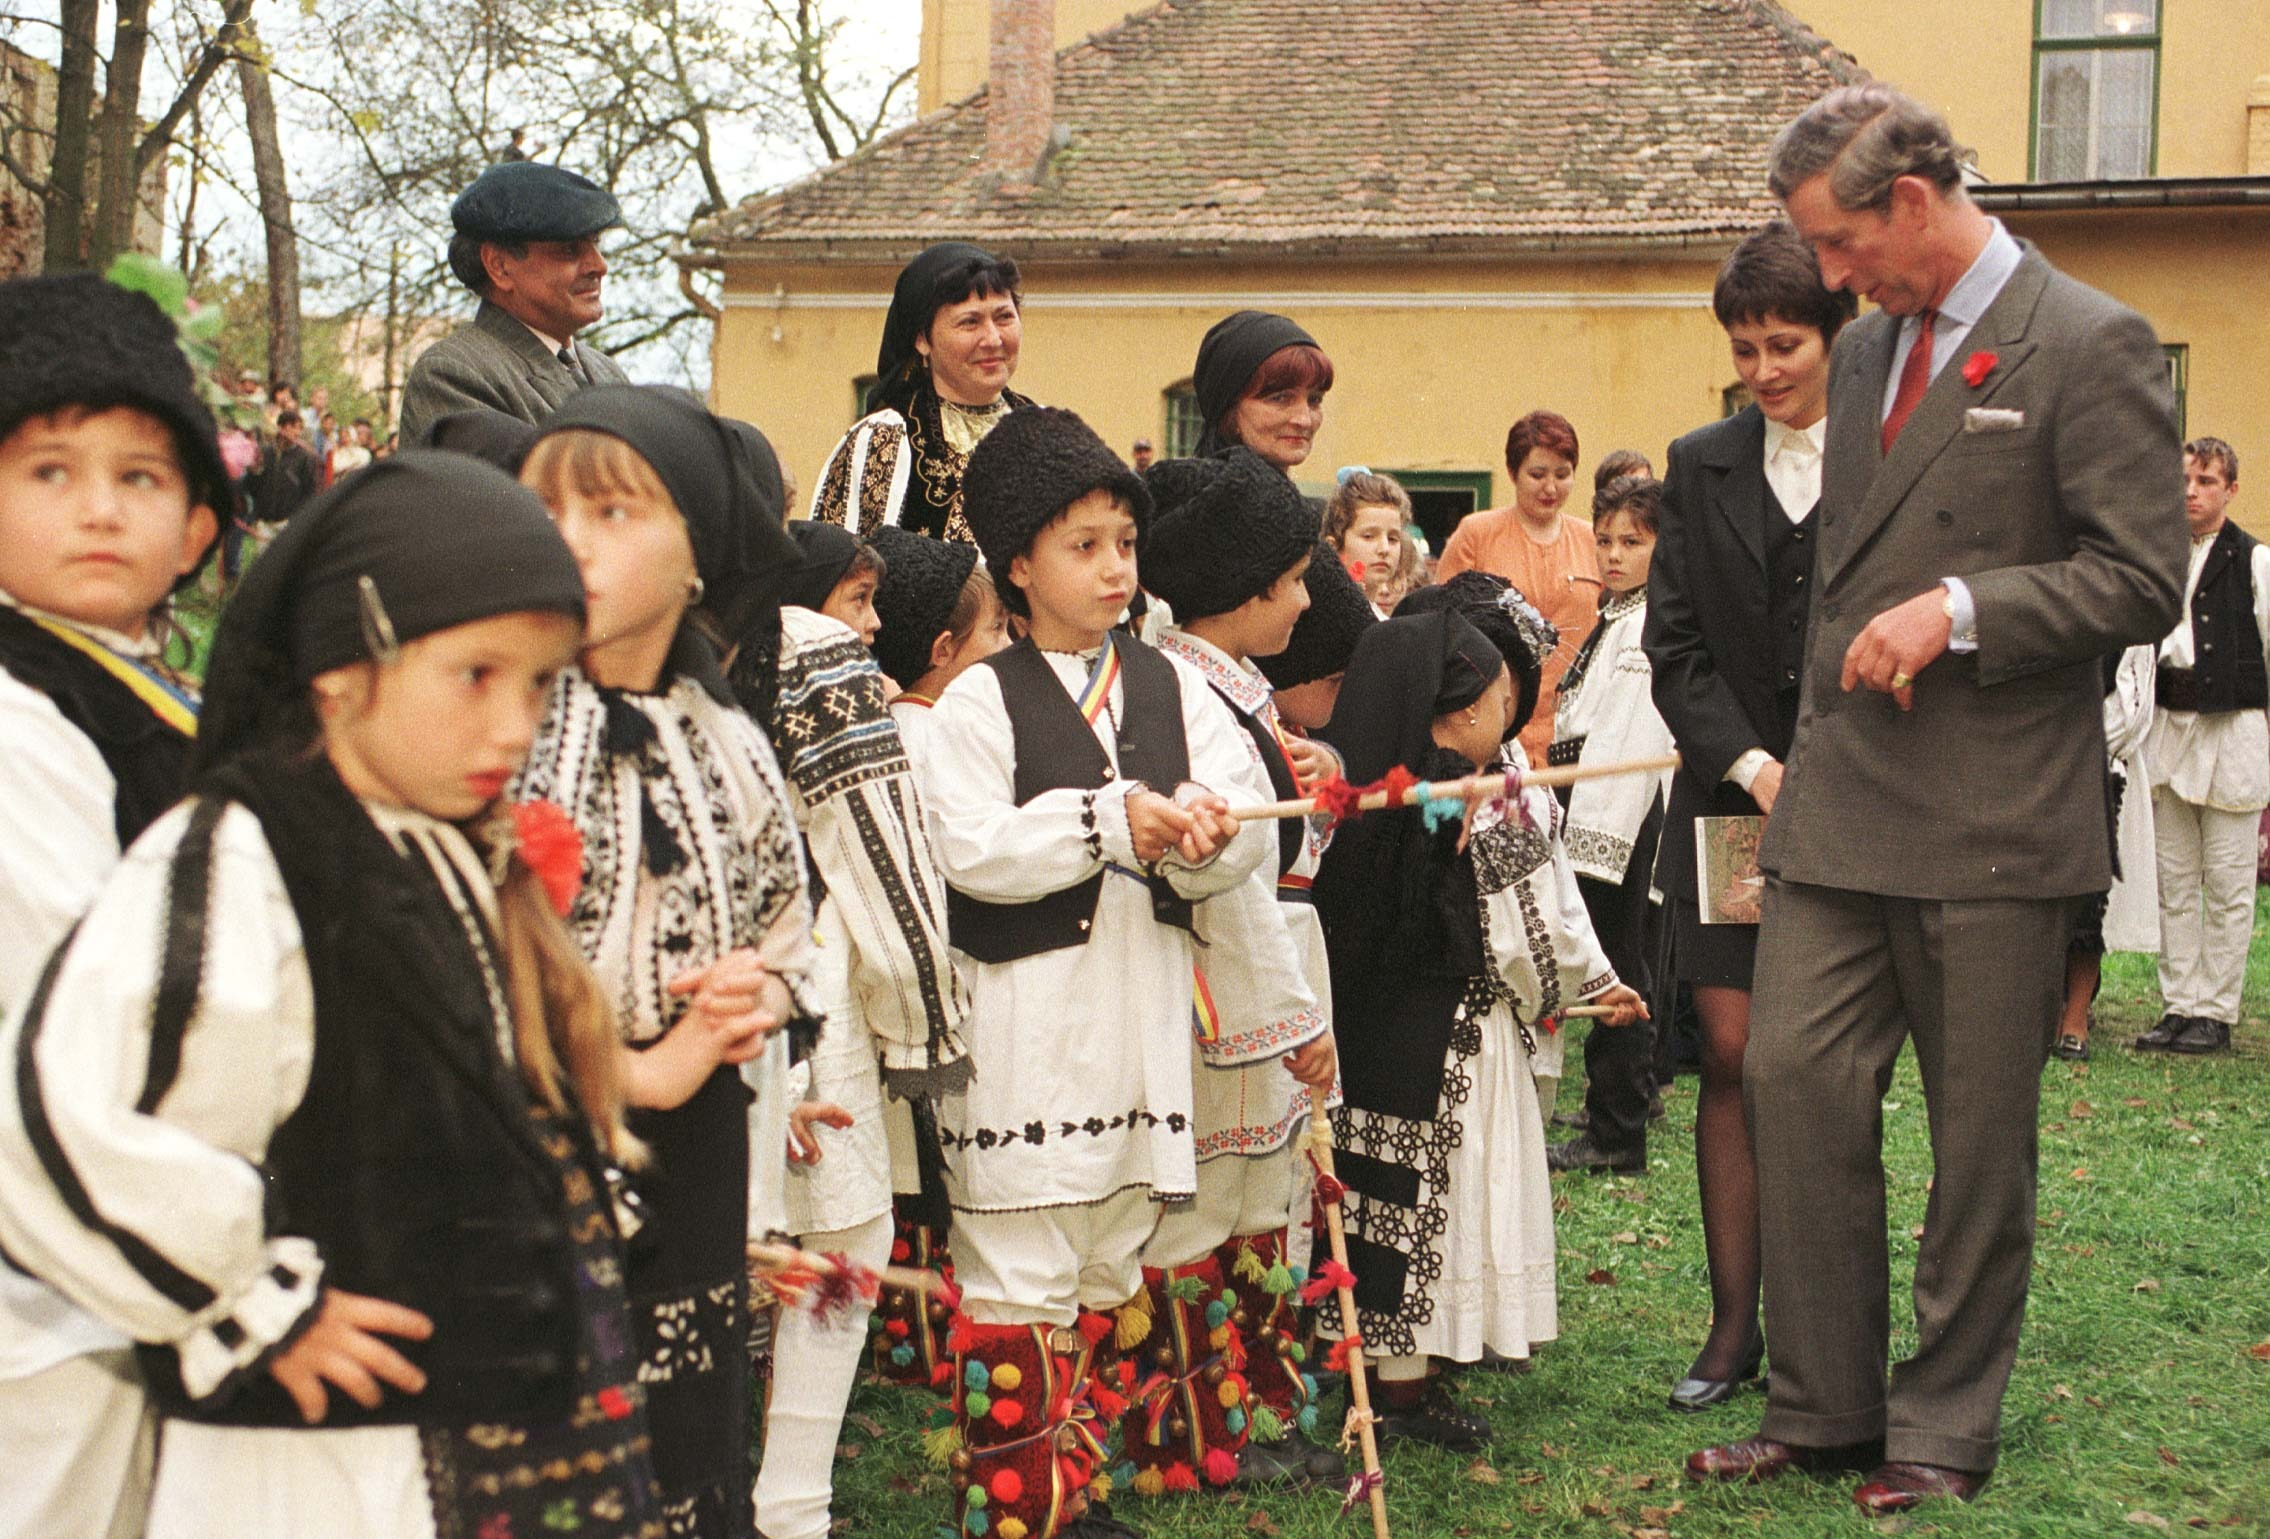 The Prince of Wales visits Romania in 1998